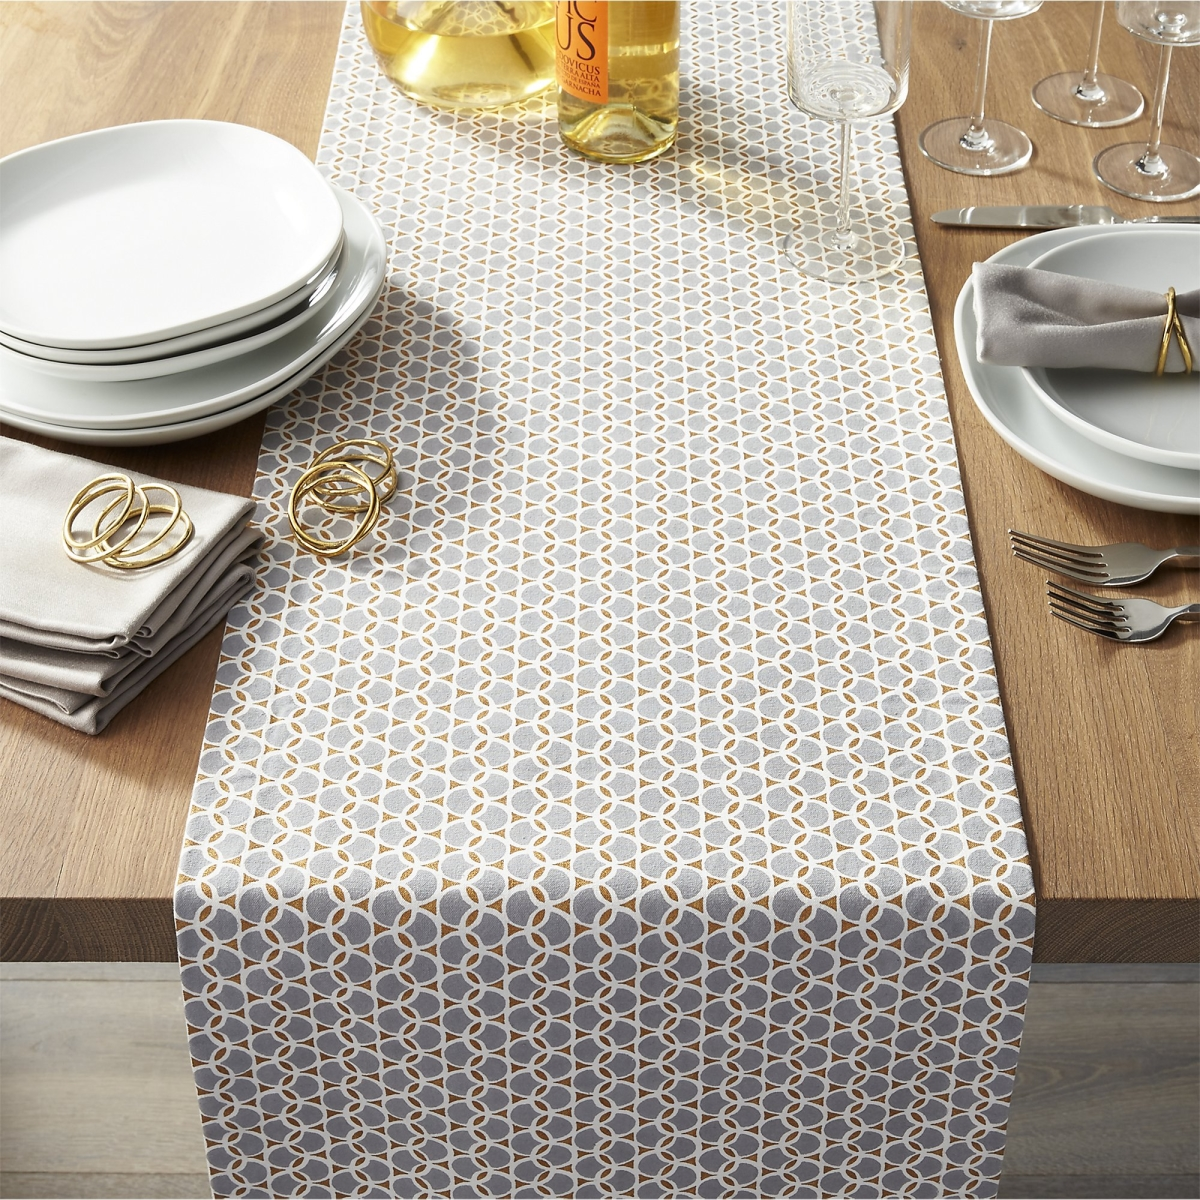 The Finest Table Runners for your Dining Table : Geometric table runner from Crate Barrel from moderndiningtables.net size 1200 x 1200 jpeg 1348kB